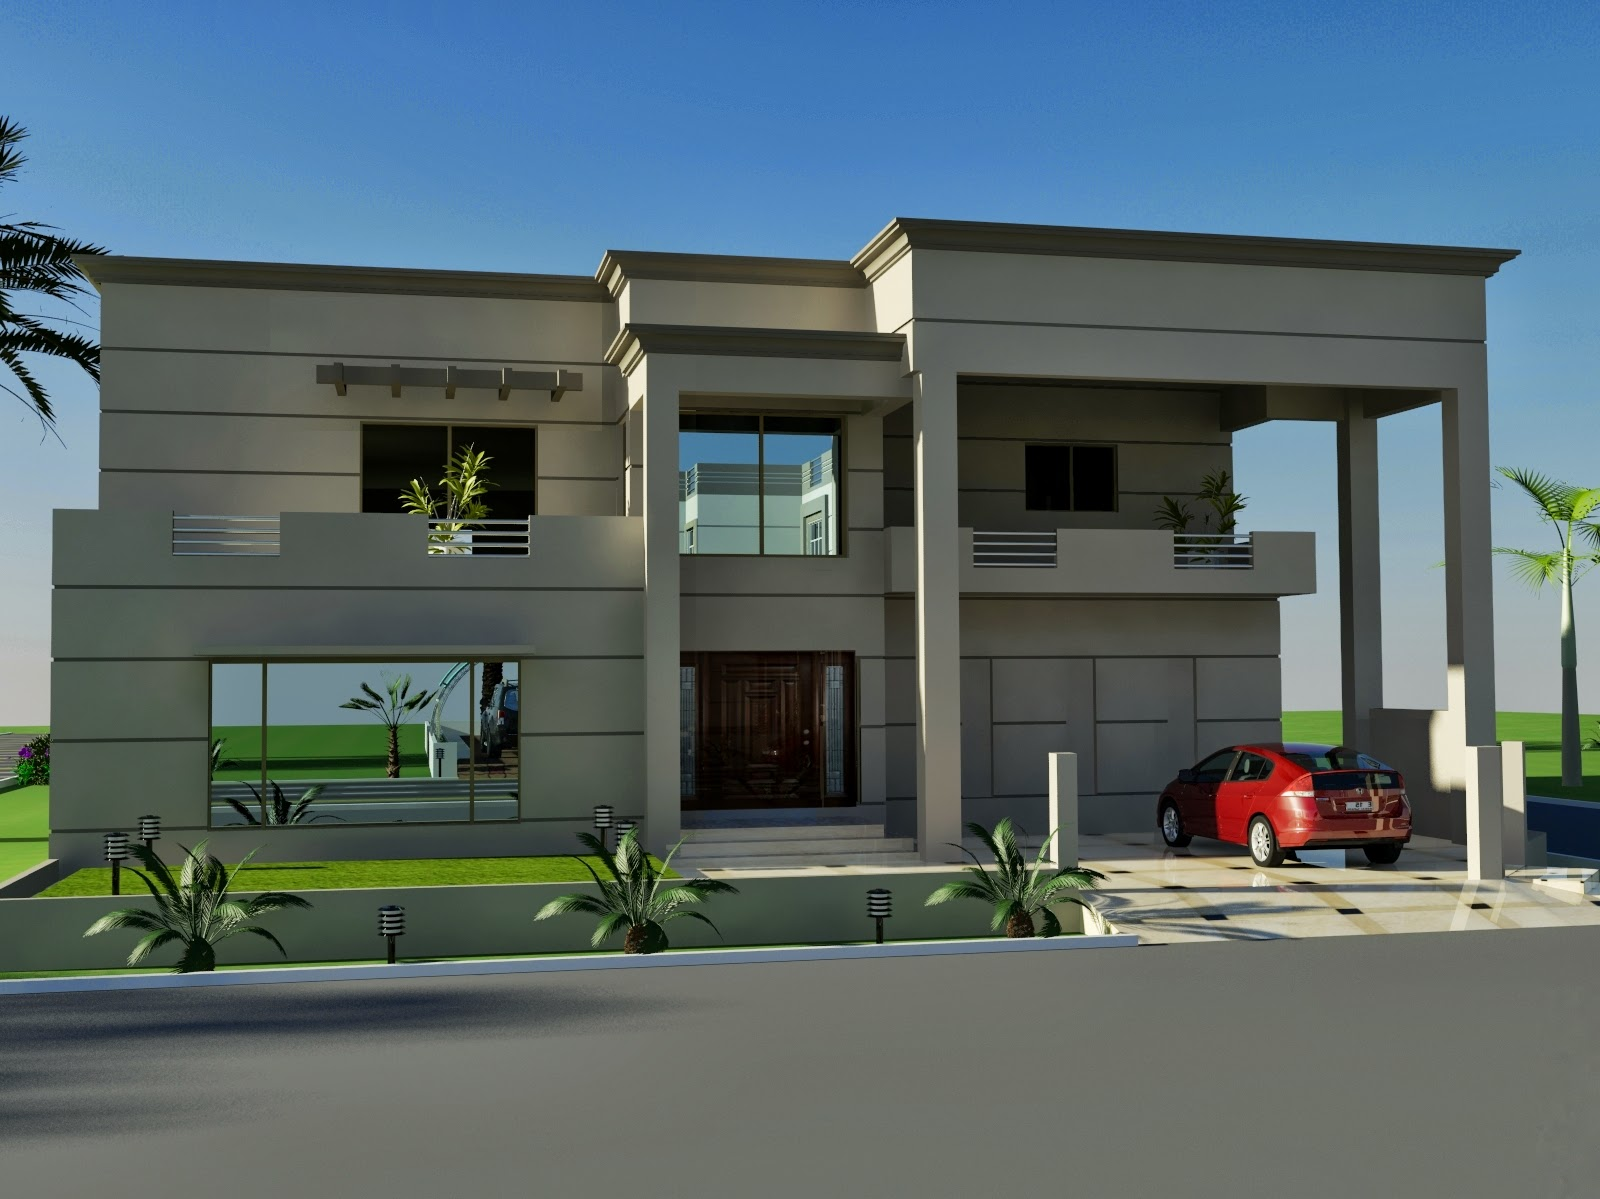 3D Front Elevation.com: Drawing Room House-Home-Contemporary